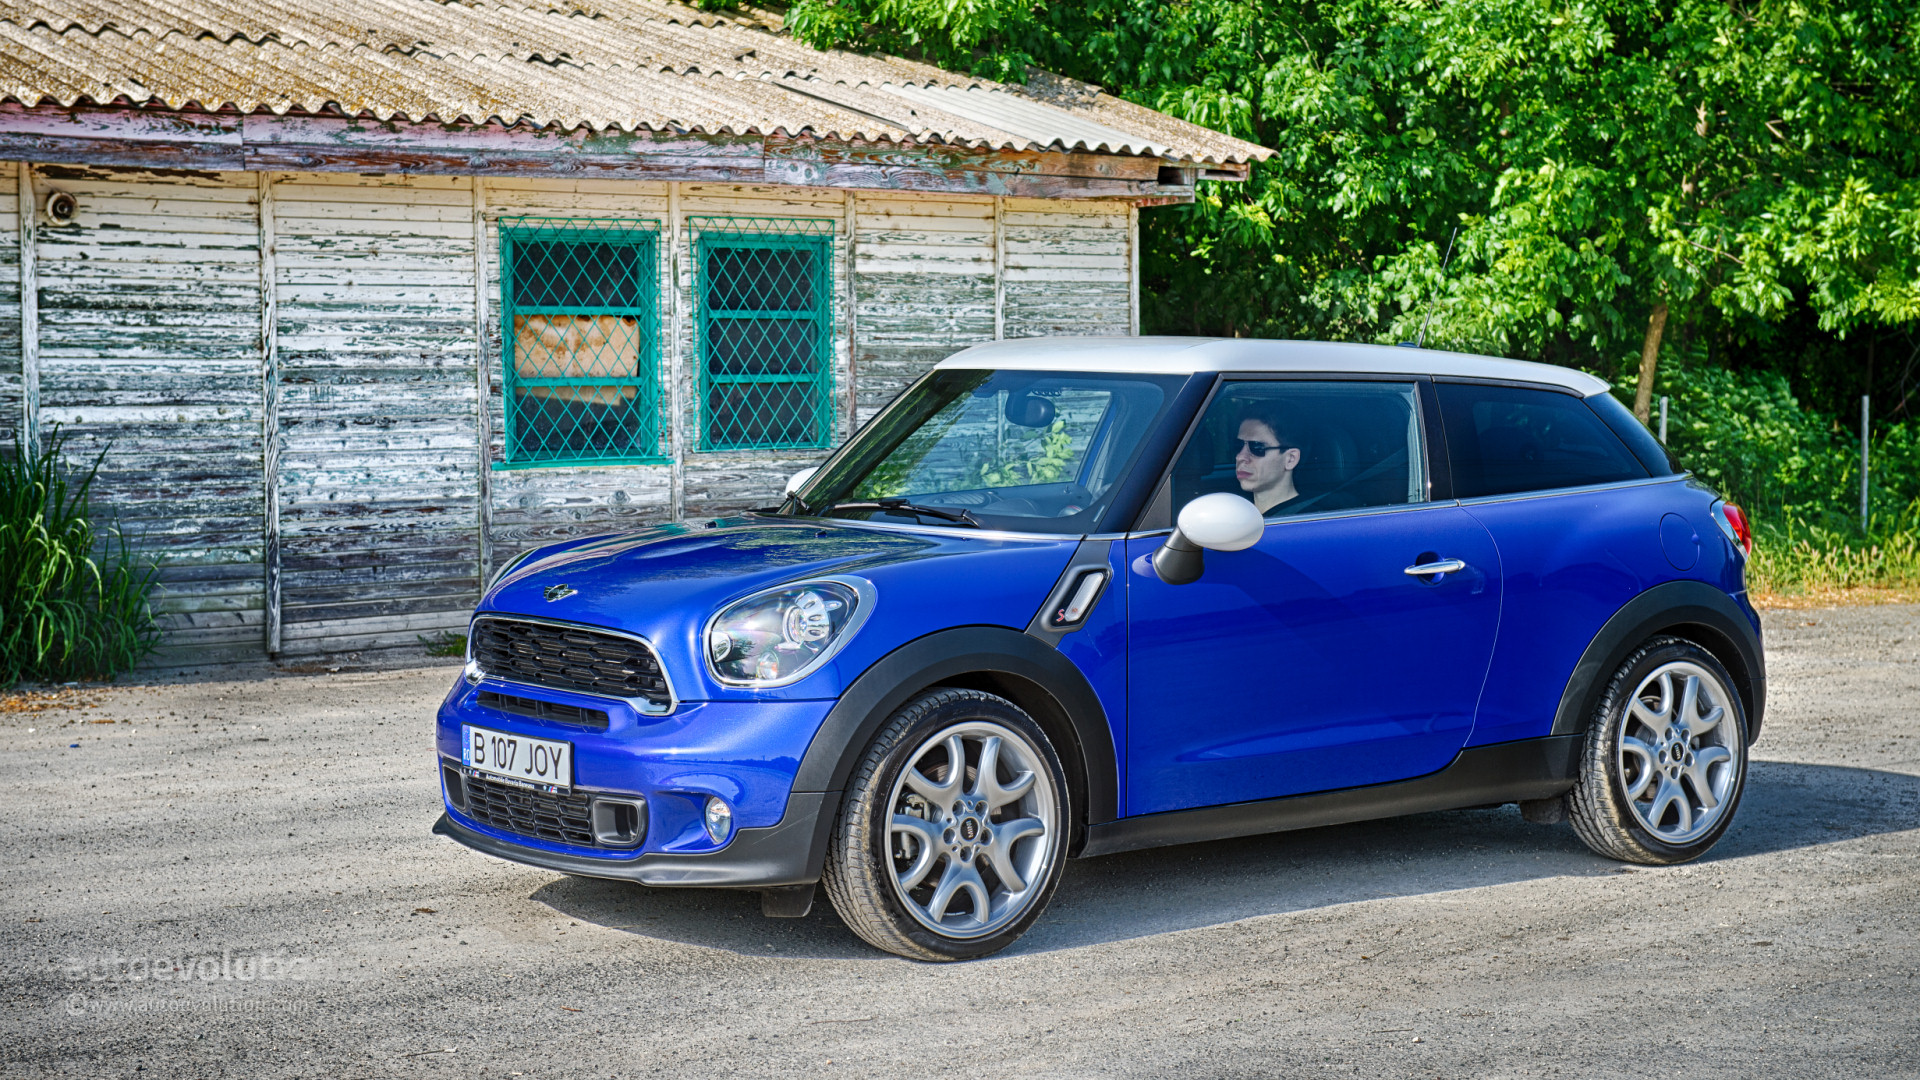 mini paceman production to end in 2016 as magna needs capacity for 5 series autoevolution. Black Bedroom Furniture Sets. Home Design Ideas